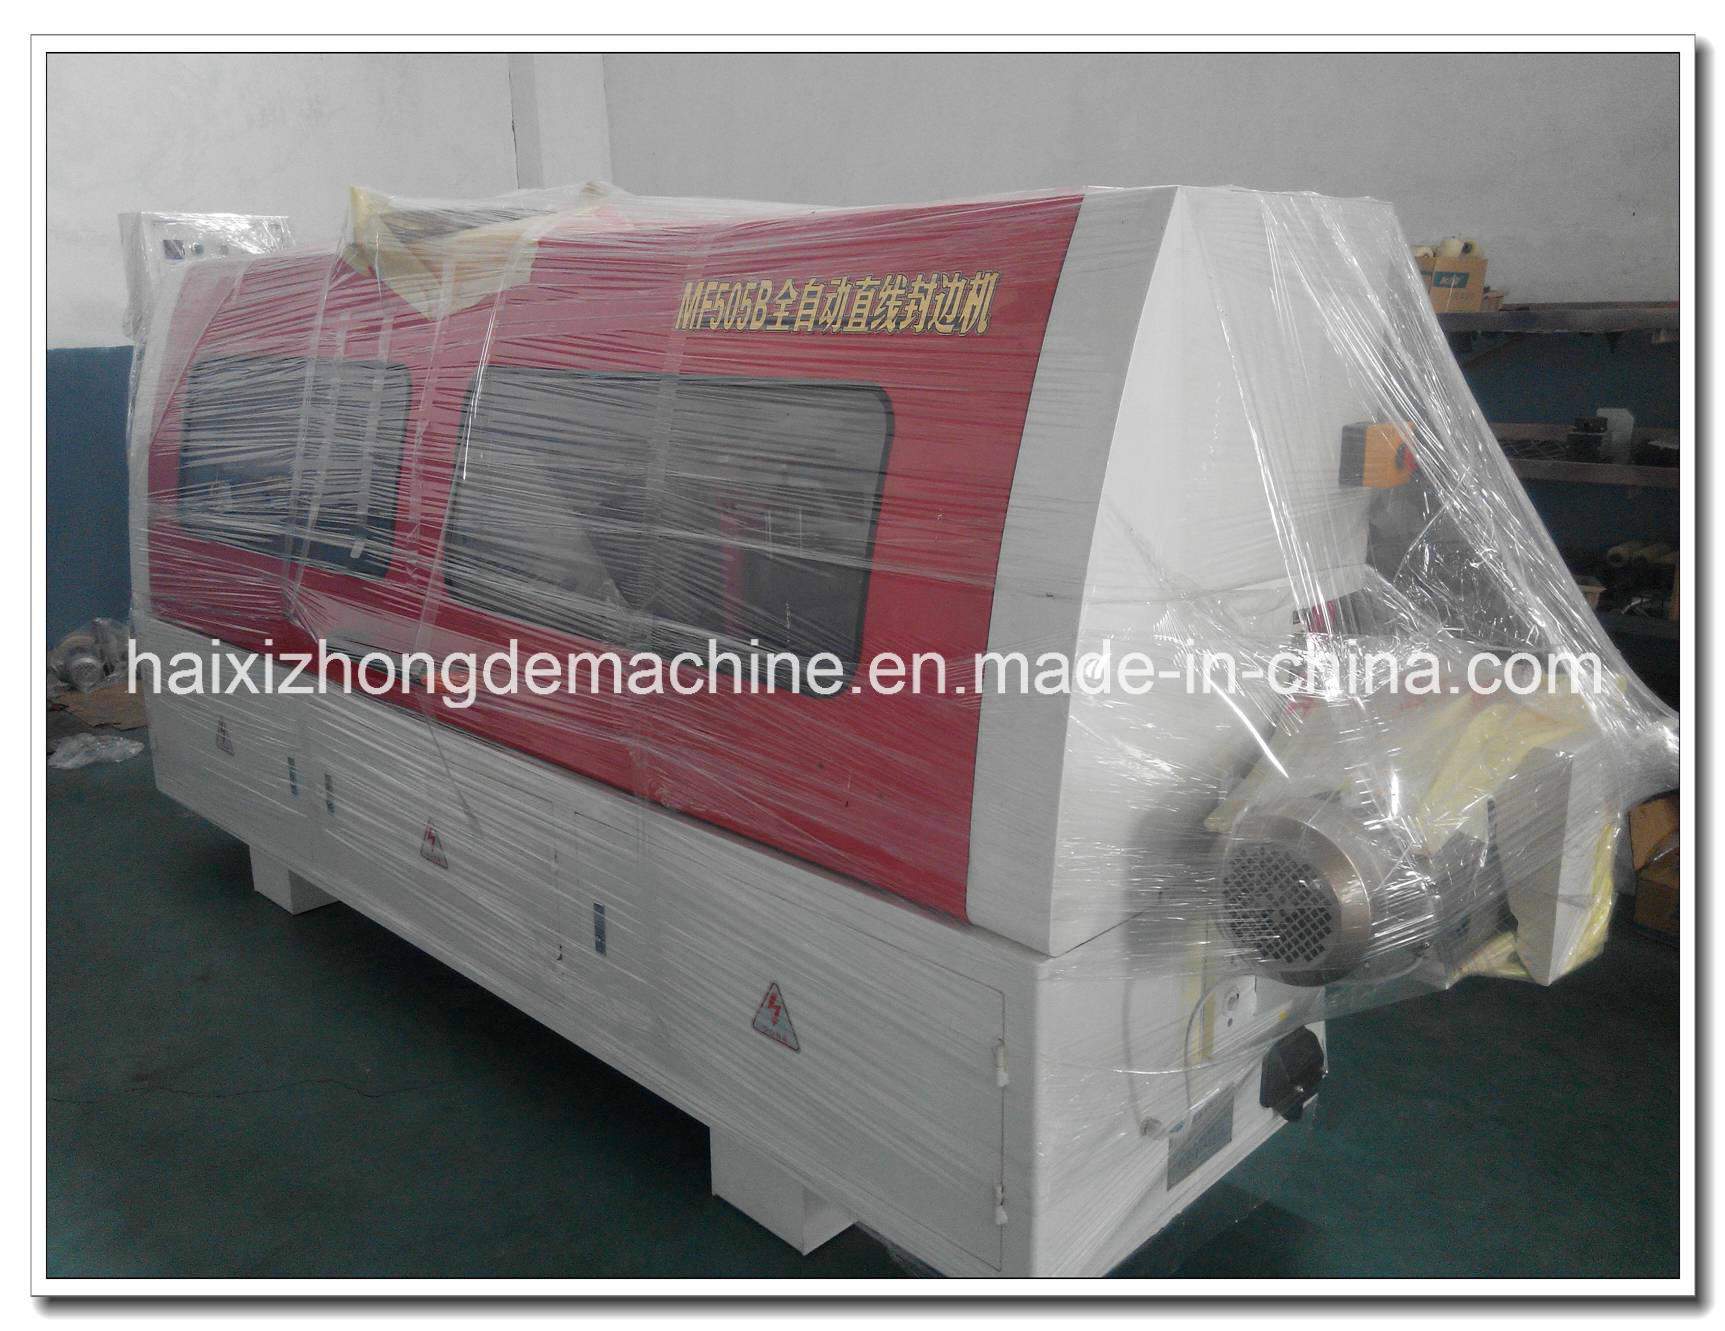 Auto Edge Banding Machine for Furniture with Function of Corner Rounding